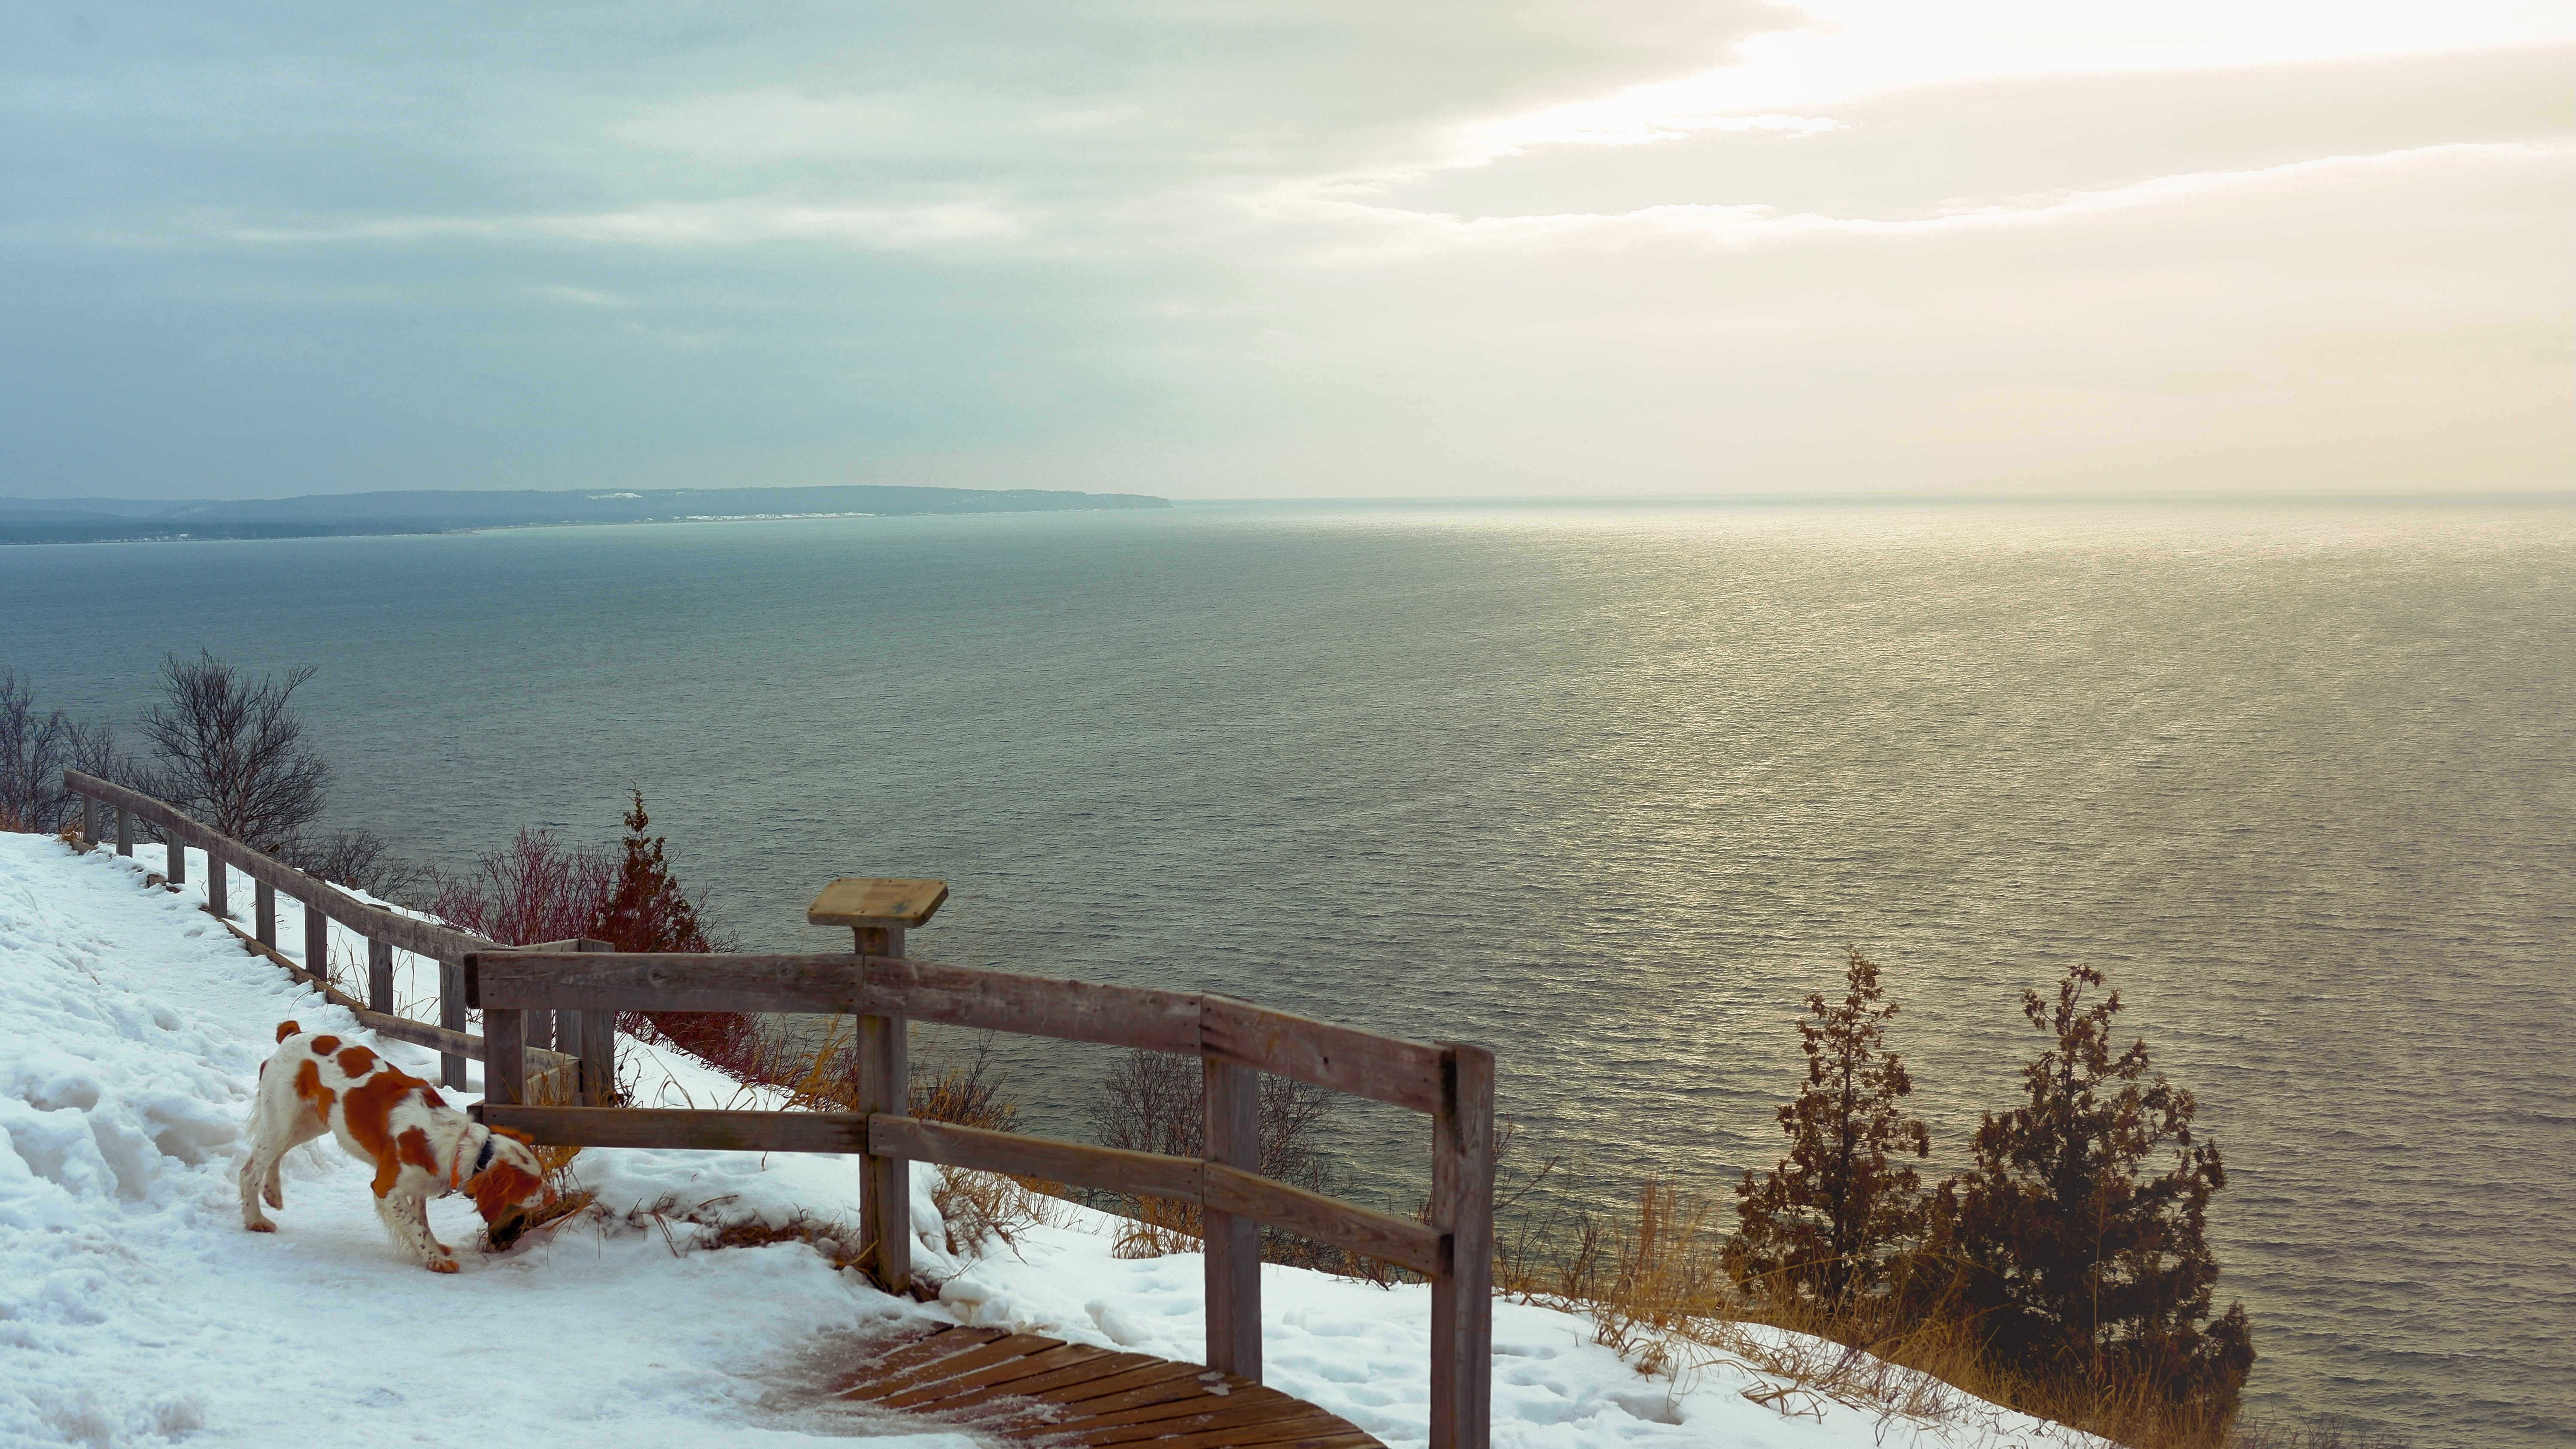 Photo of a reddish brown and white dog on a snowy cliff path sniffing an old wooden fence, with the ocean in the background.